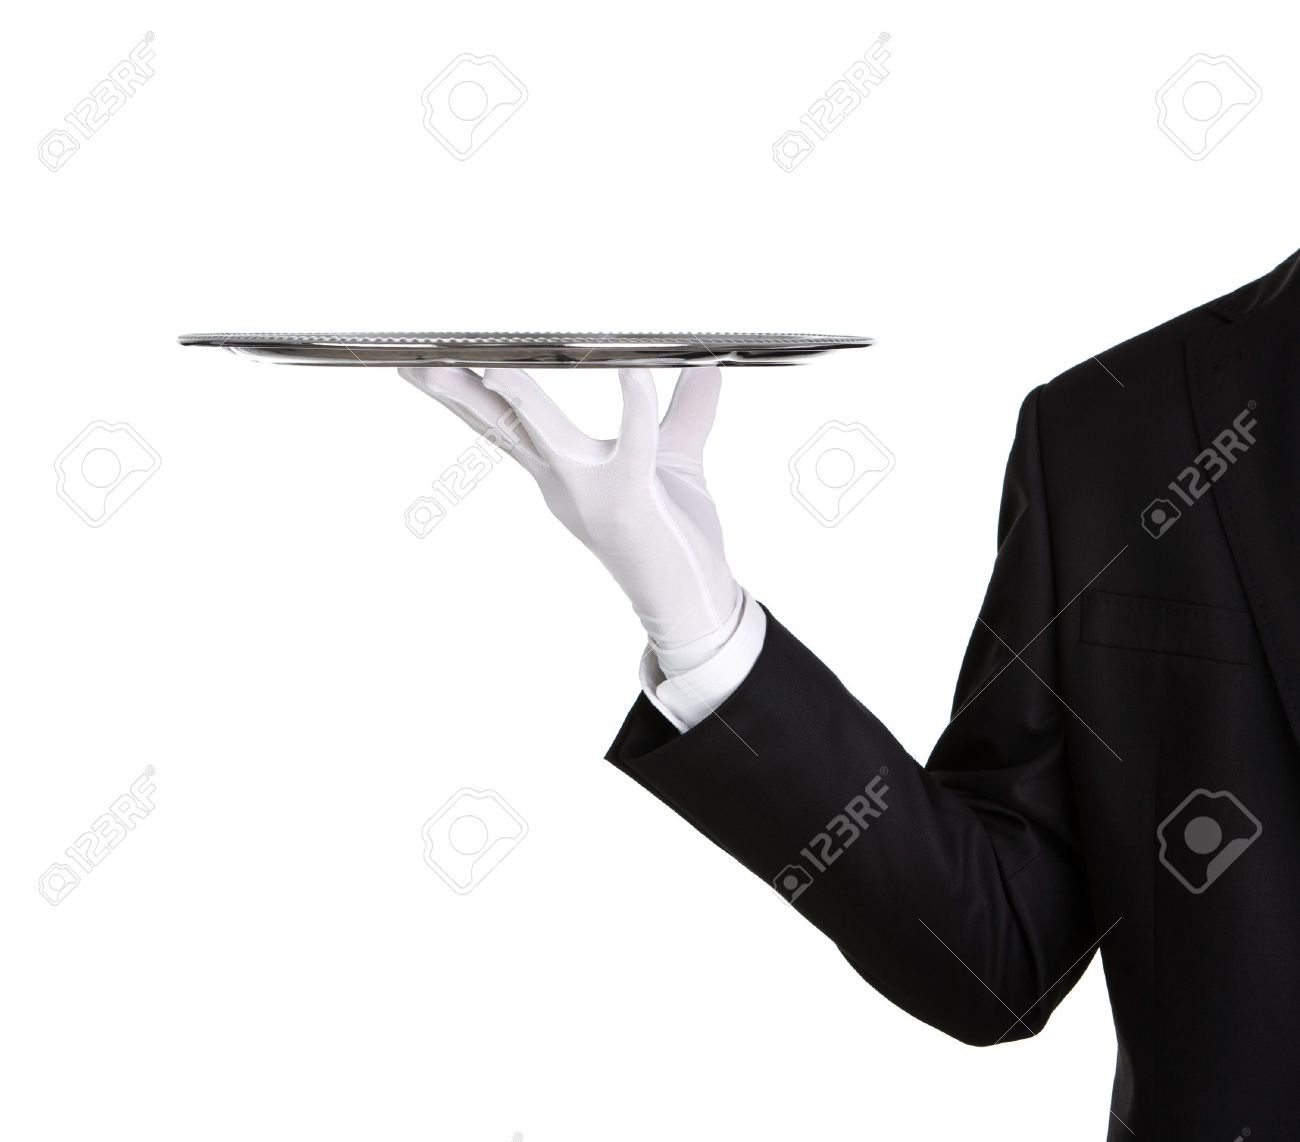 Waiter holding empty silver tray isolated on white background with copy space Stock Photo - 16519546